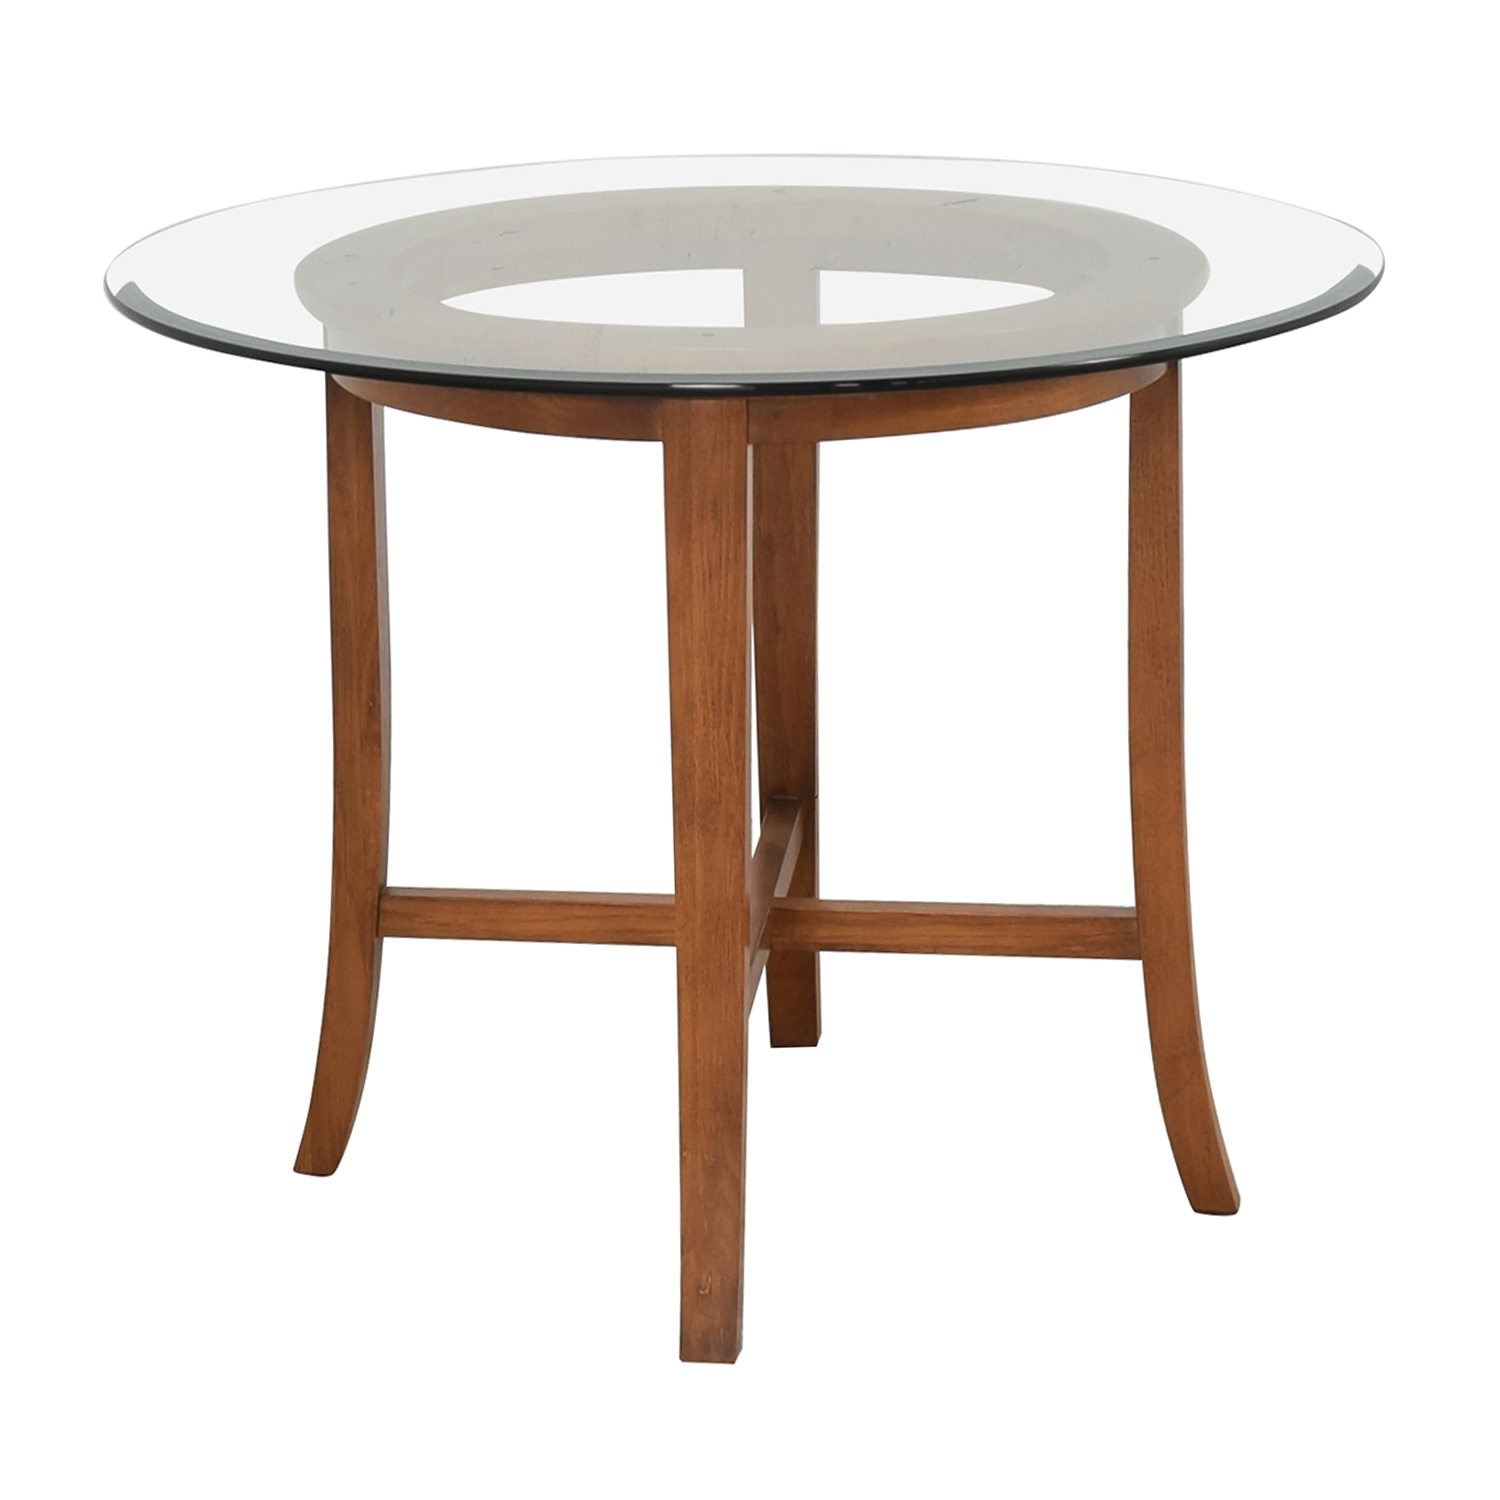 Crate & Barrel Crate & Barrel Halo Round Dining Table nyc